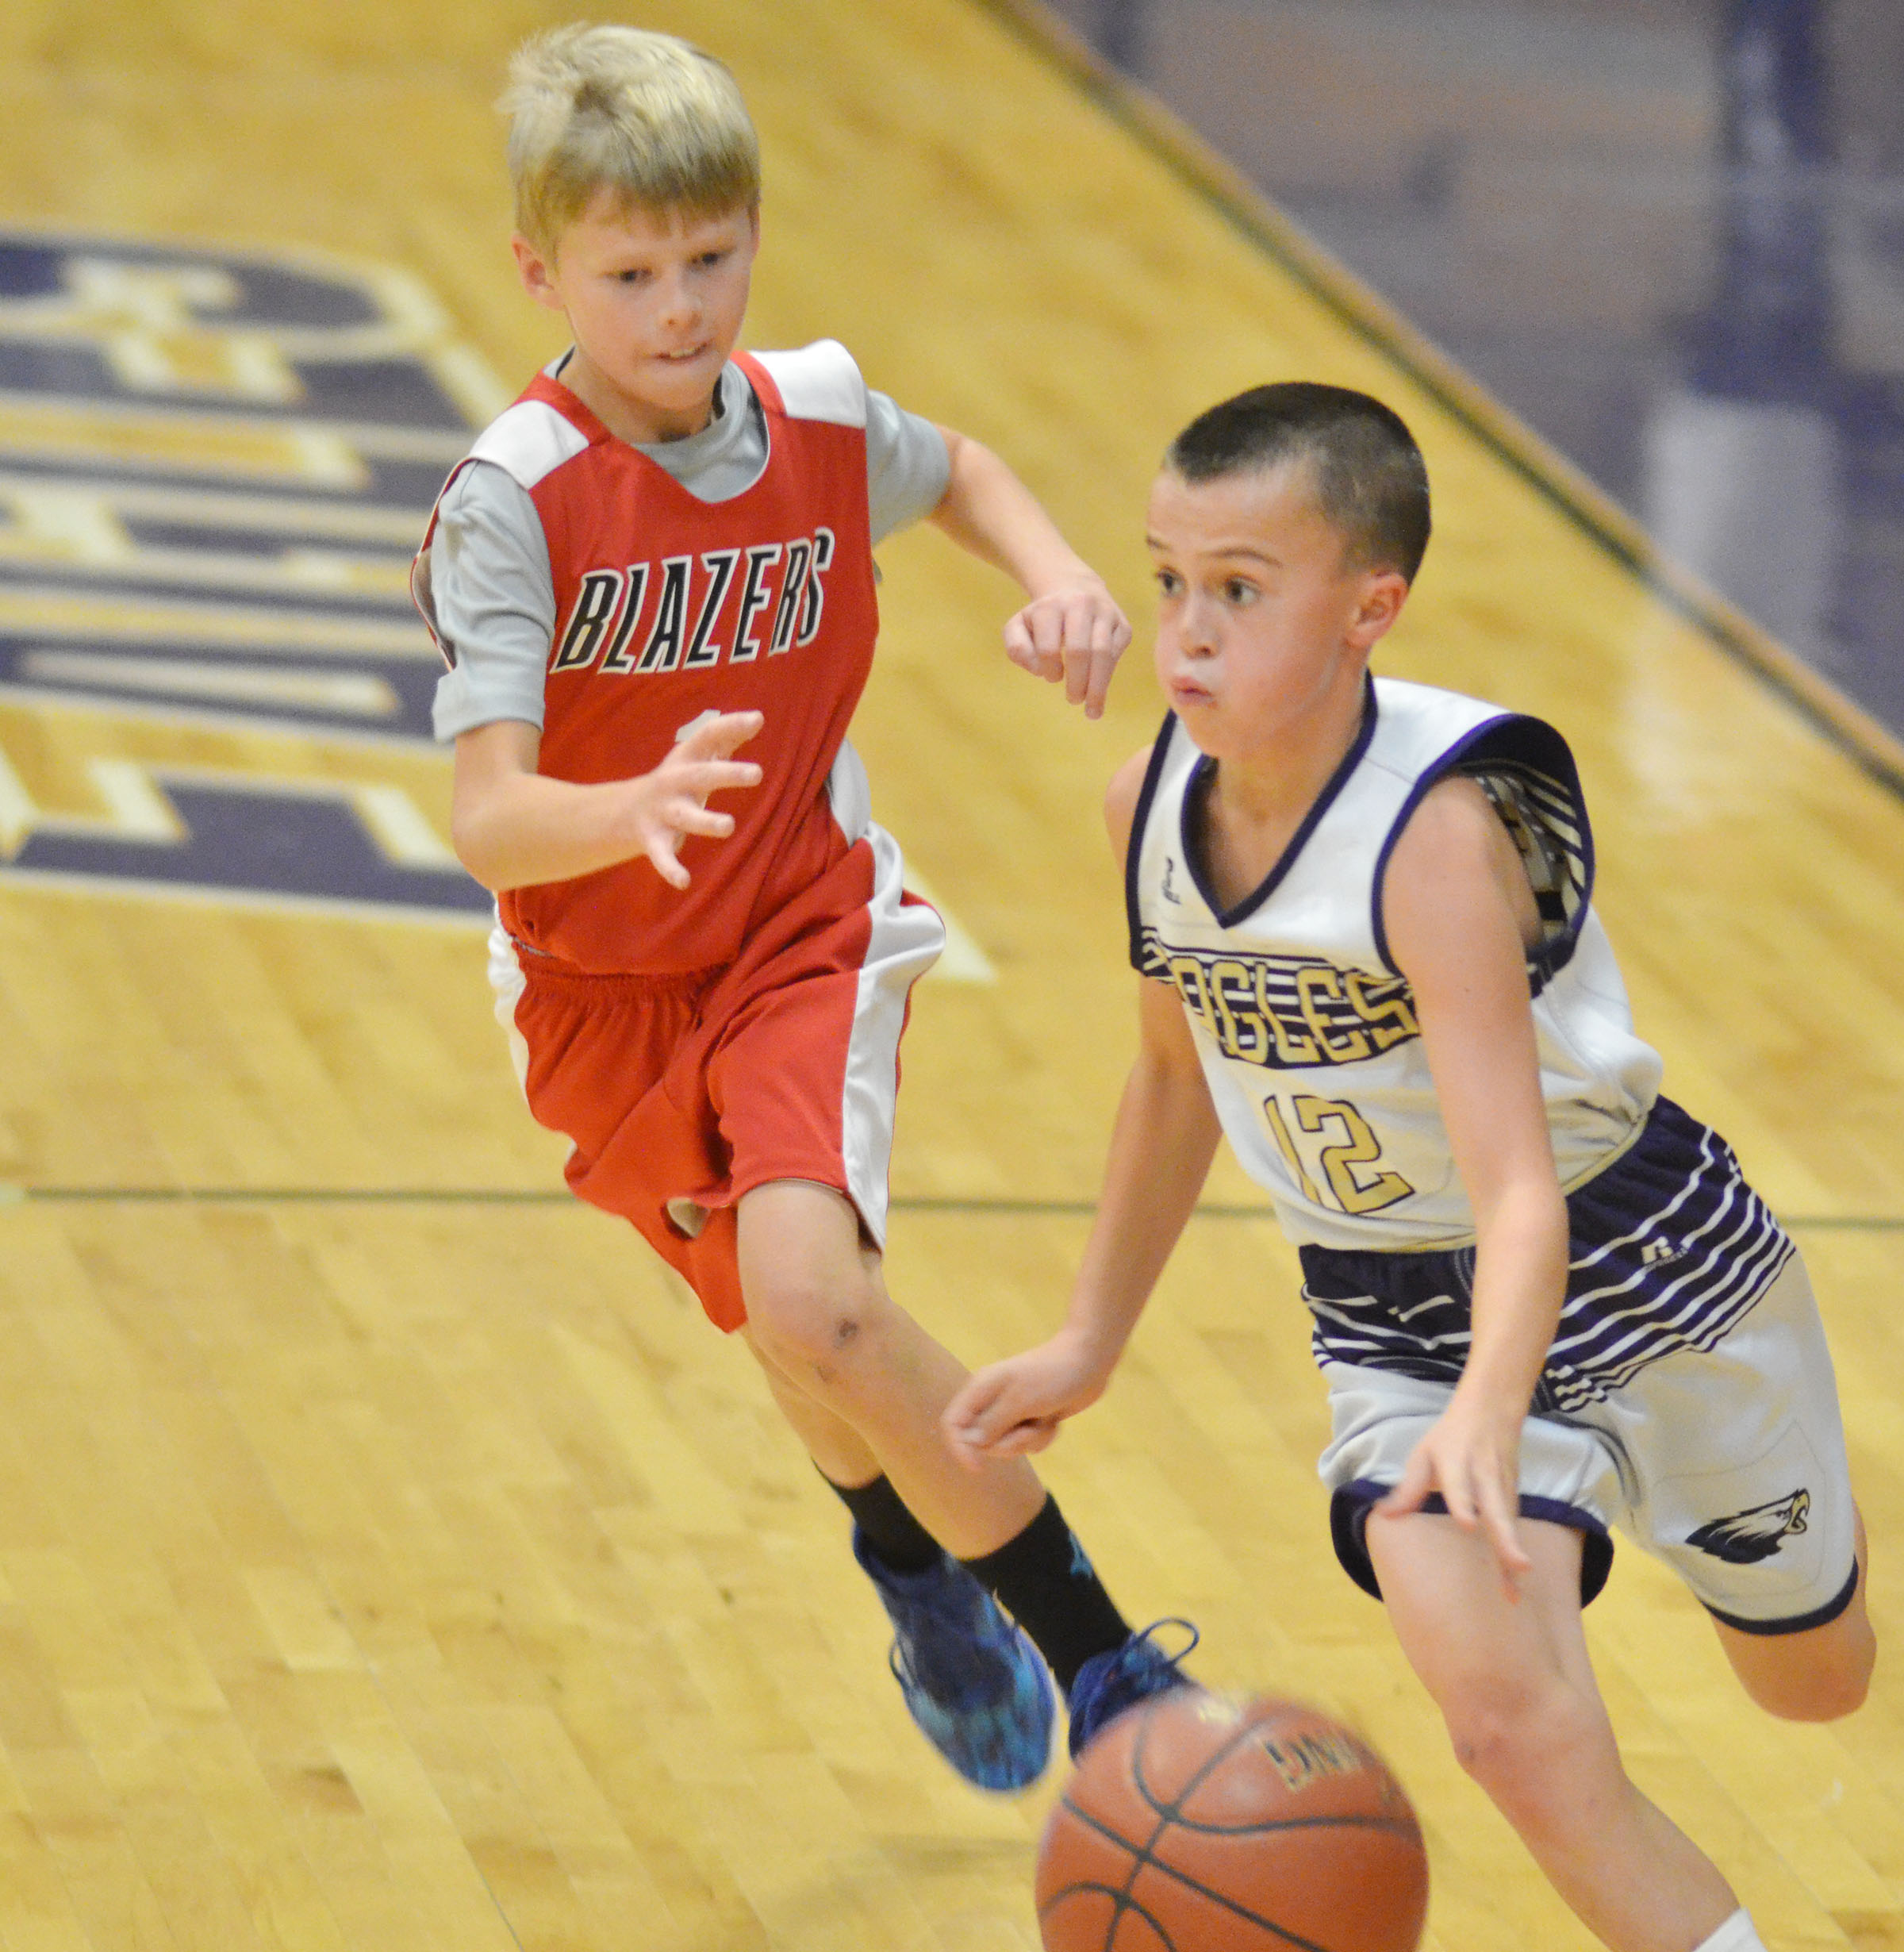 CMS sixth-grader Chase Hord dribbles to the basket.